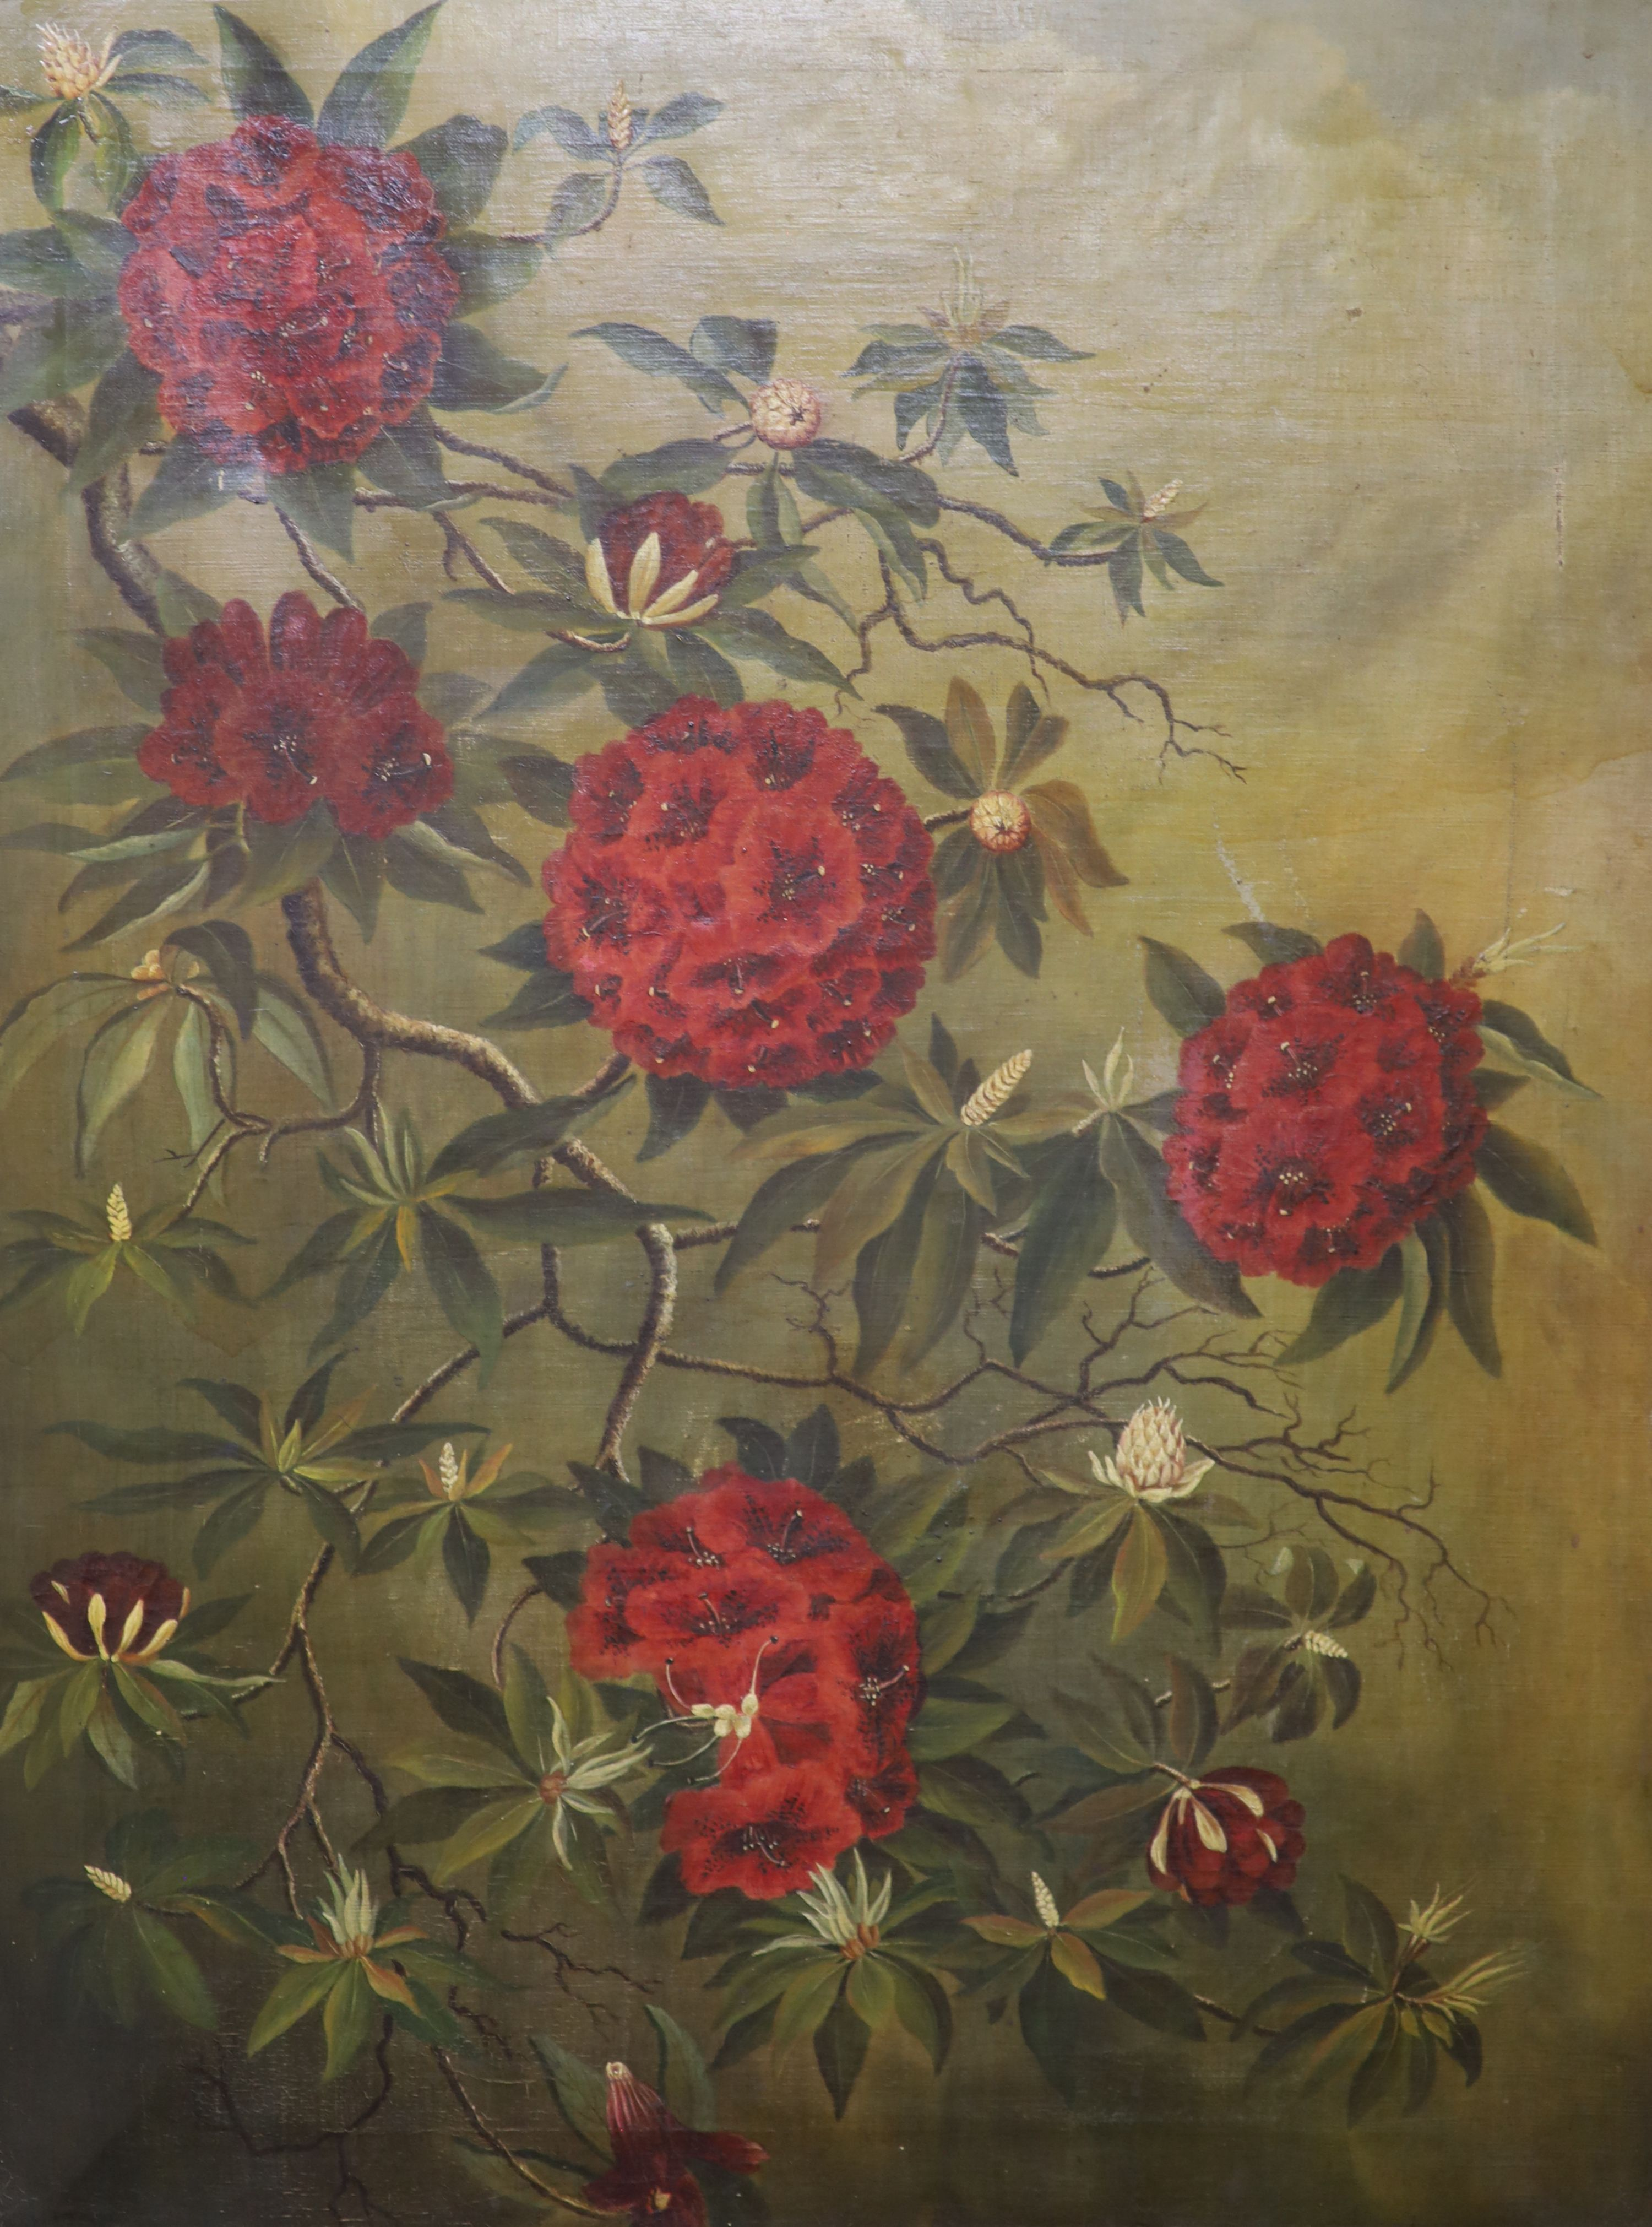 English School c.1900, oil on canvas, Study of Rhododendron blossom, indistinctly signed, 90 x 67cm